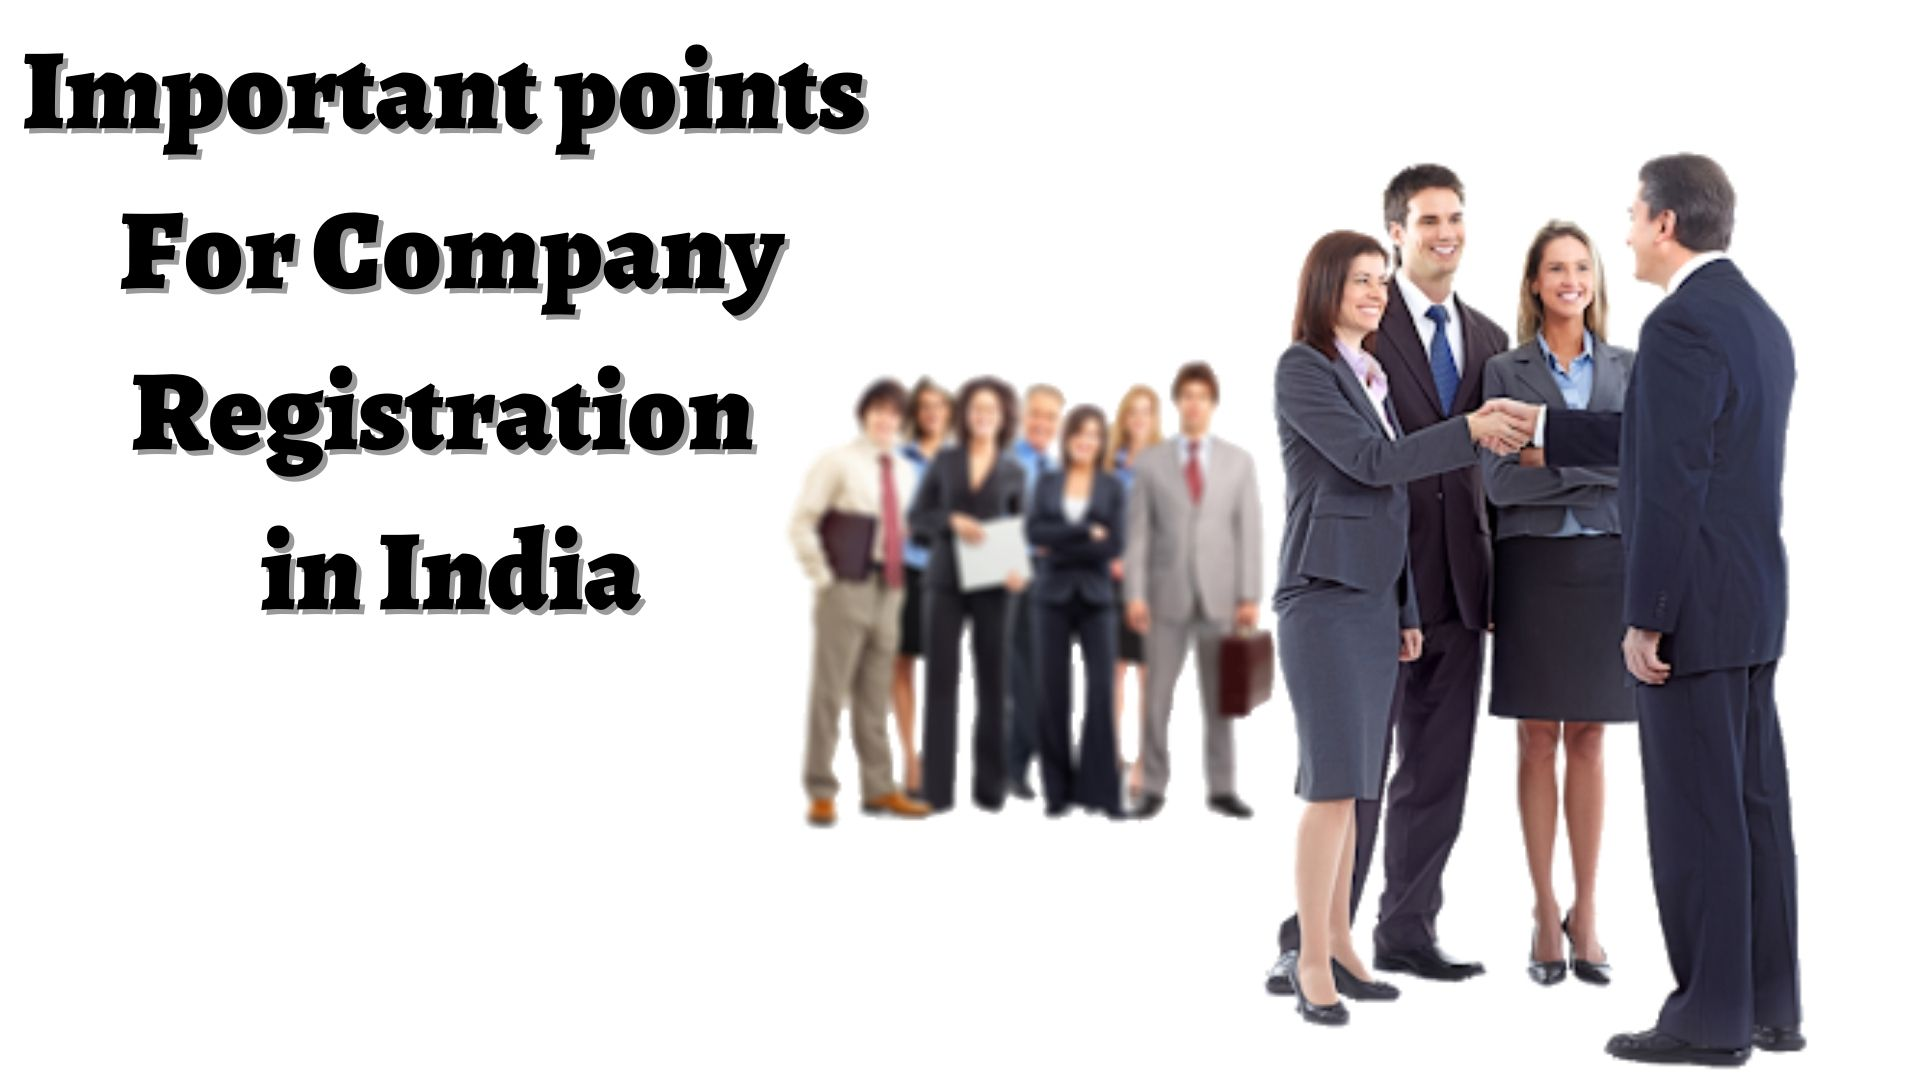 Important points For Company registration in India